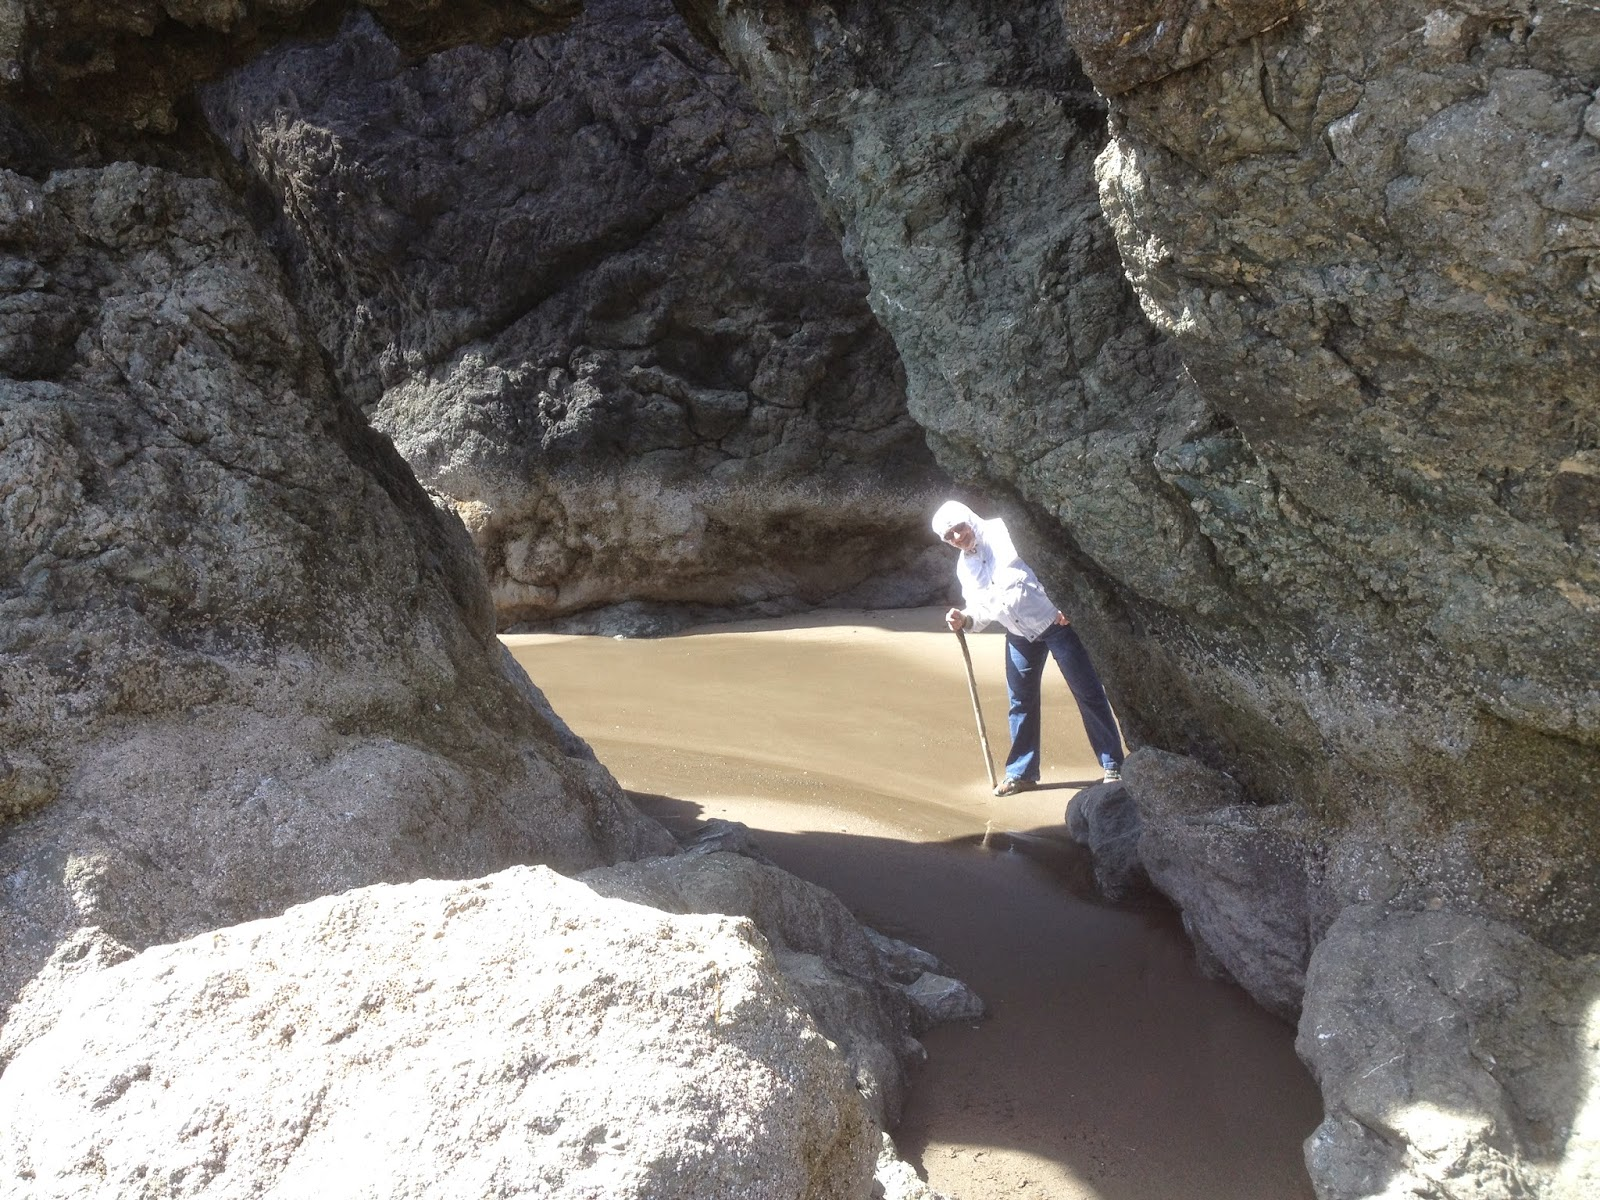 An arched rock on Pacific Ocean beach